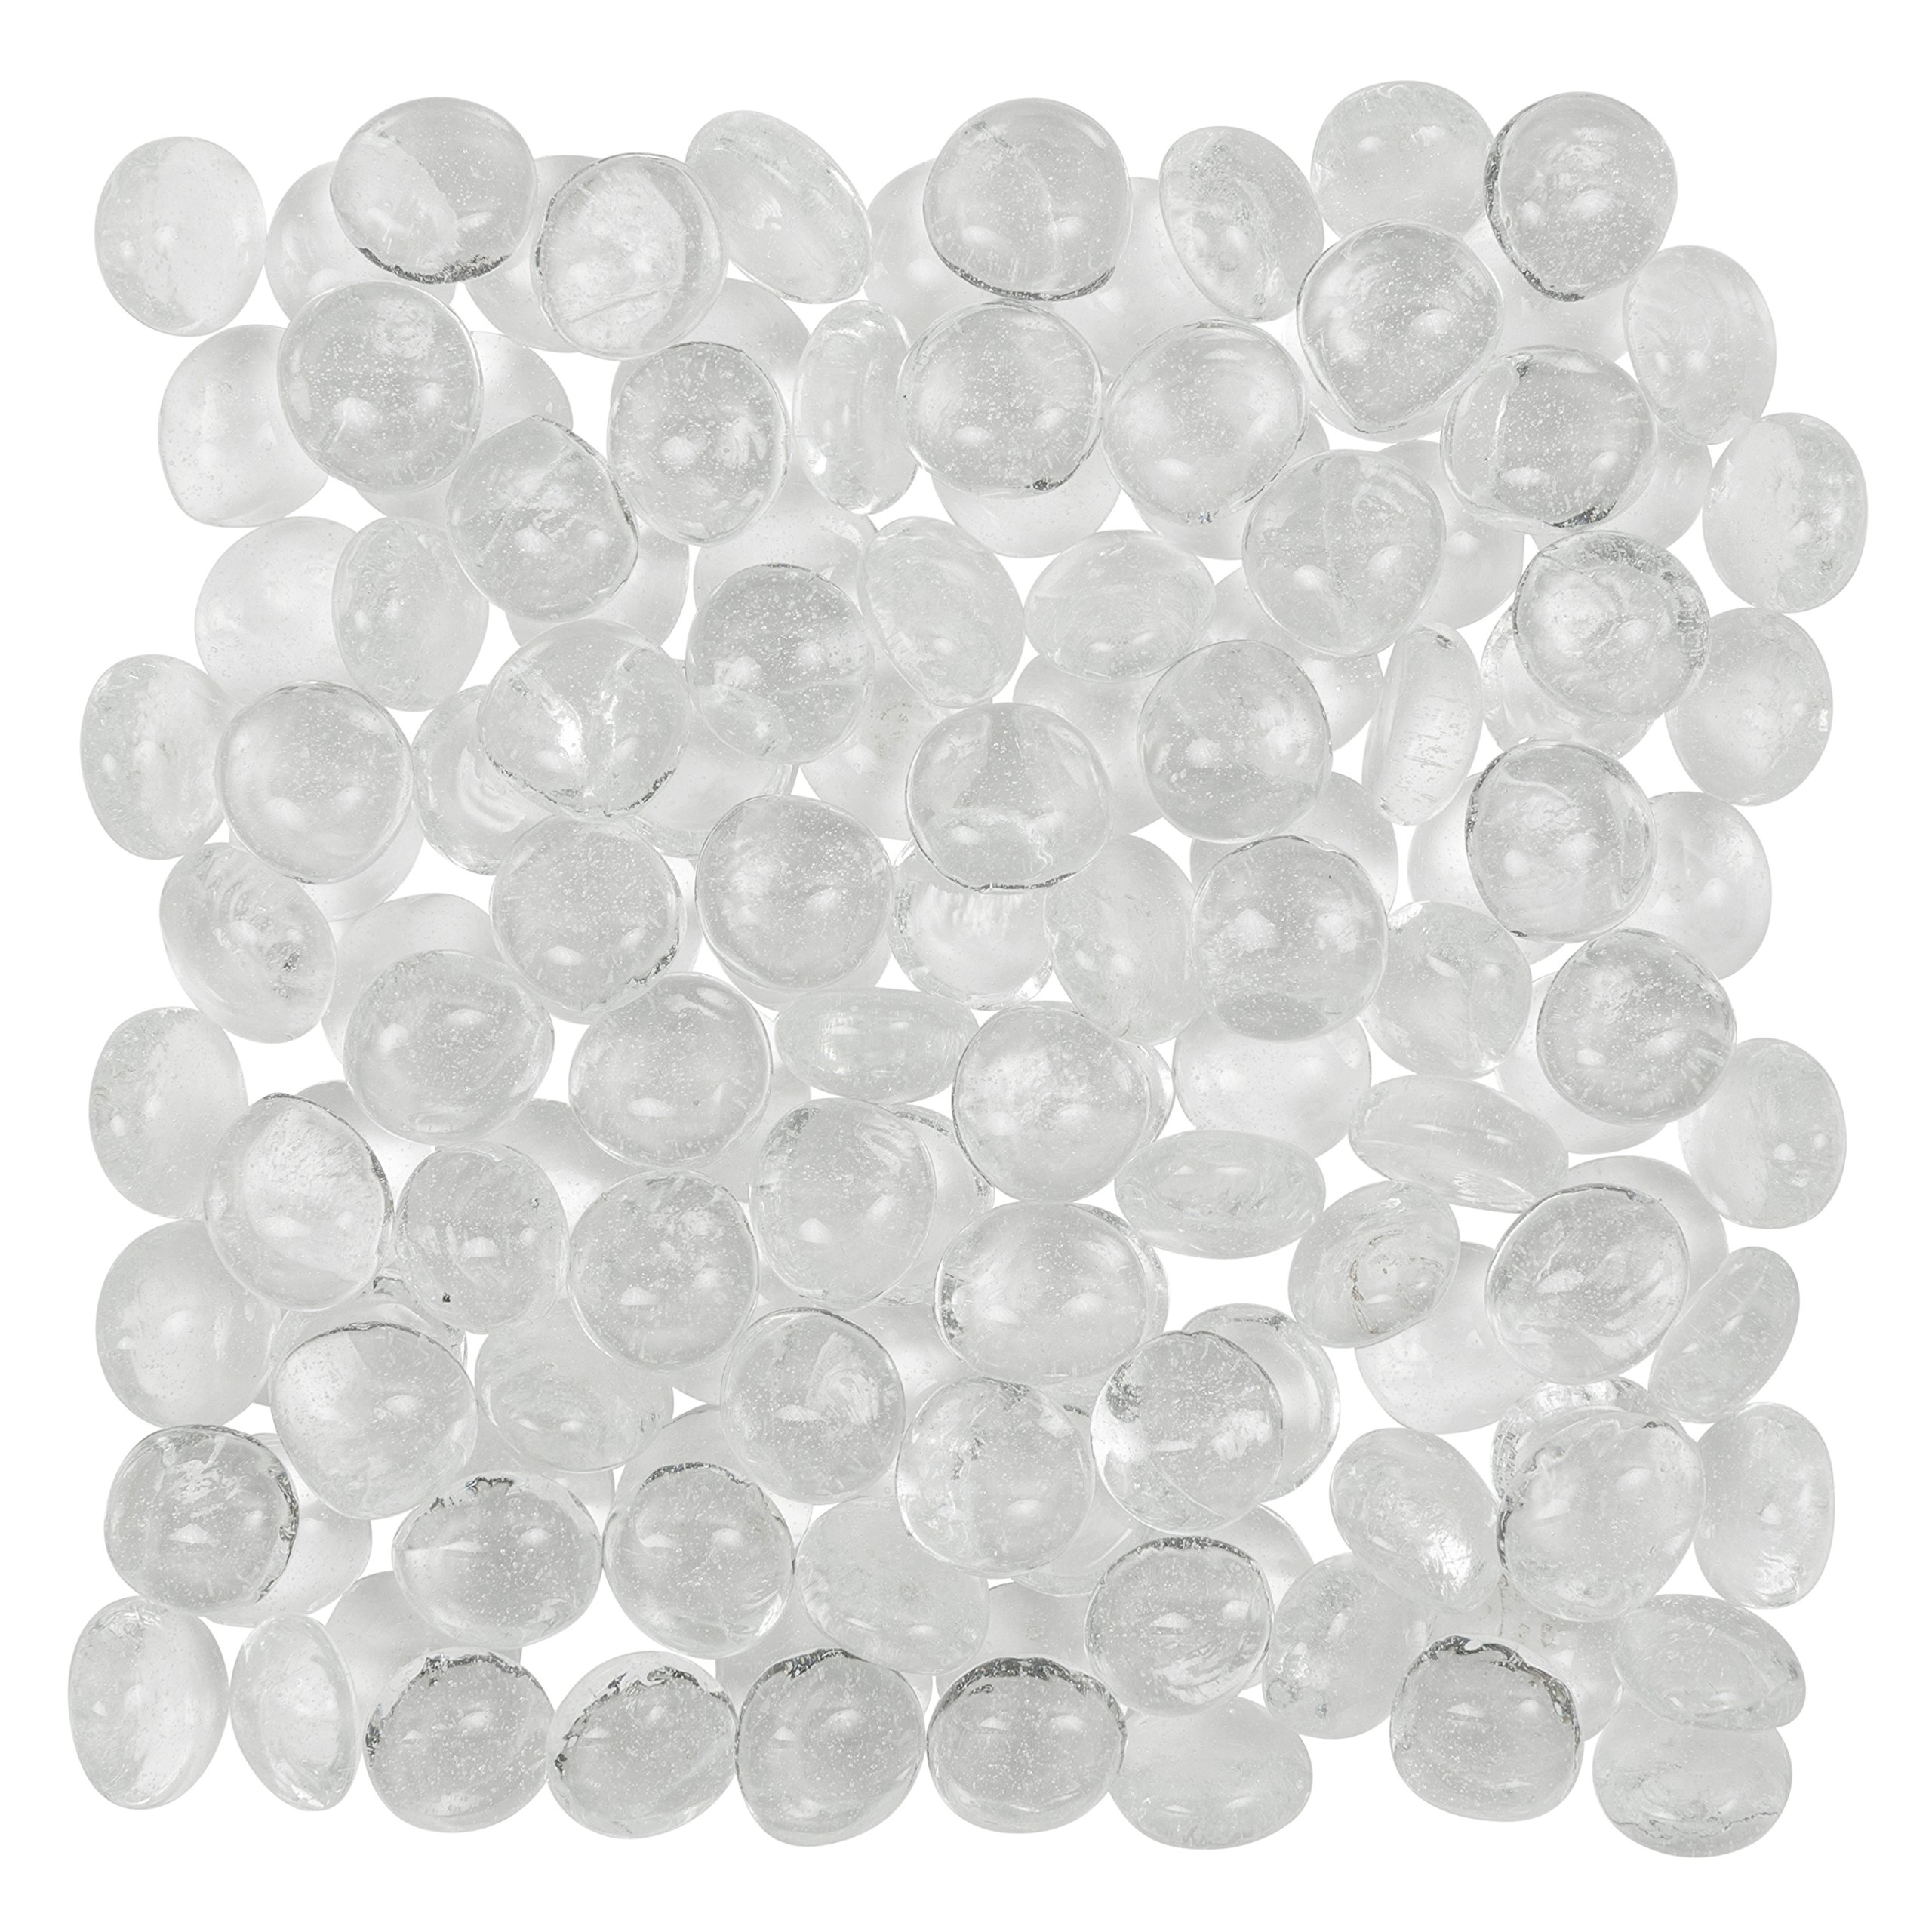 Artisan Supply Clear Glass Gems 1 Lbs. — FILLS 1 1/4 Cups Vol. —Non-Toxic Lead Free Vase Filler, Table Scatter, Aquarium Fillers — Beautiful, Smooth, Fun, Vibrant Colors Crafted in the USA by Artisan Supply